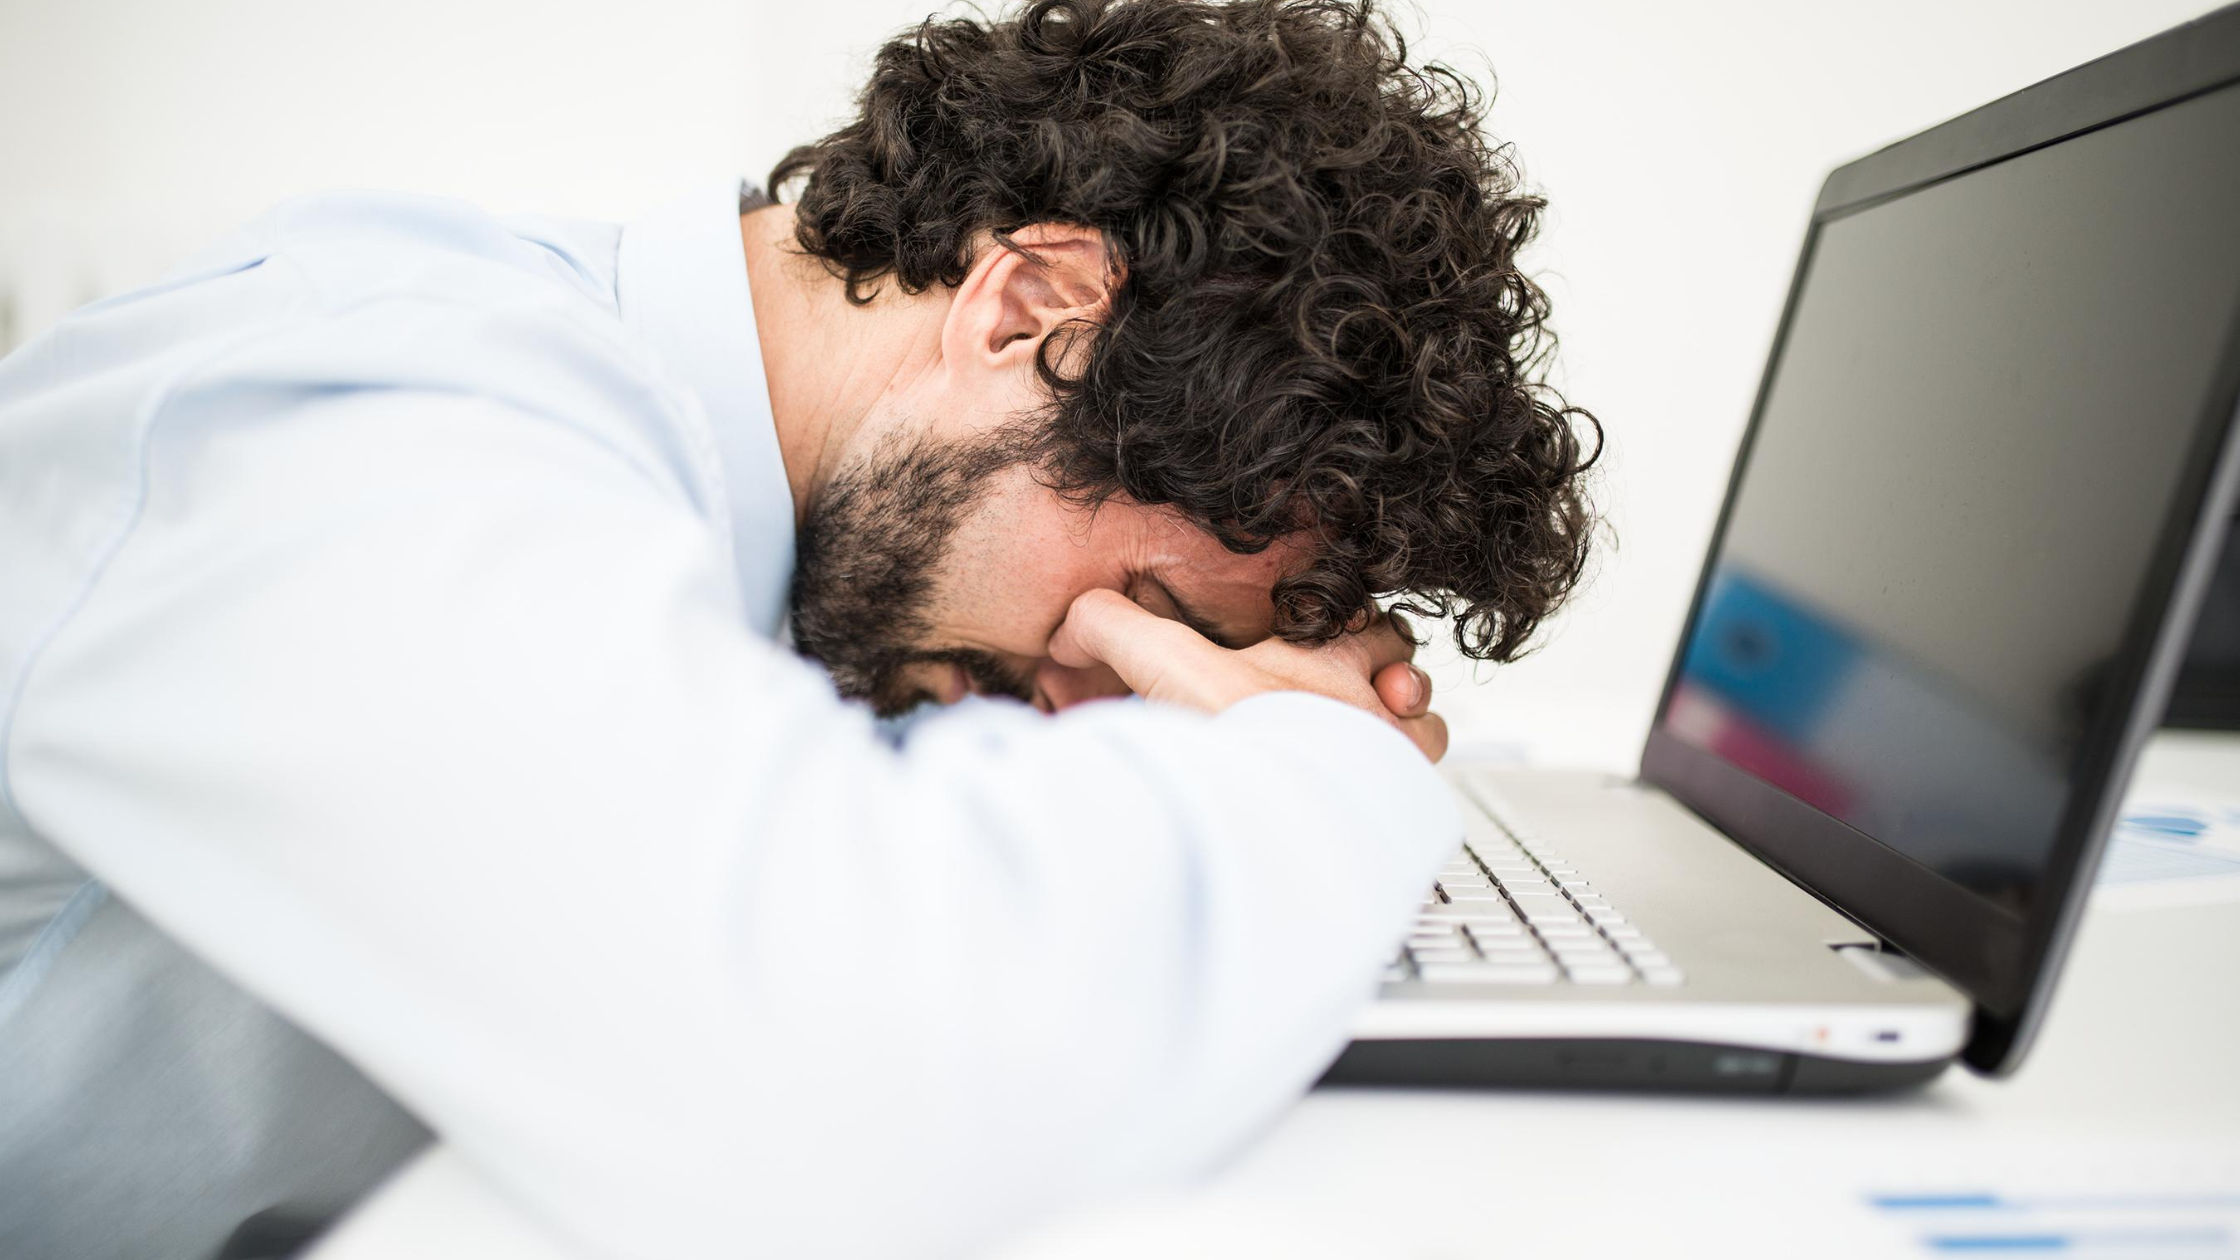 7 Chiropractor Tips: How To Manage Stress In The Workplace